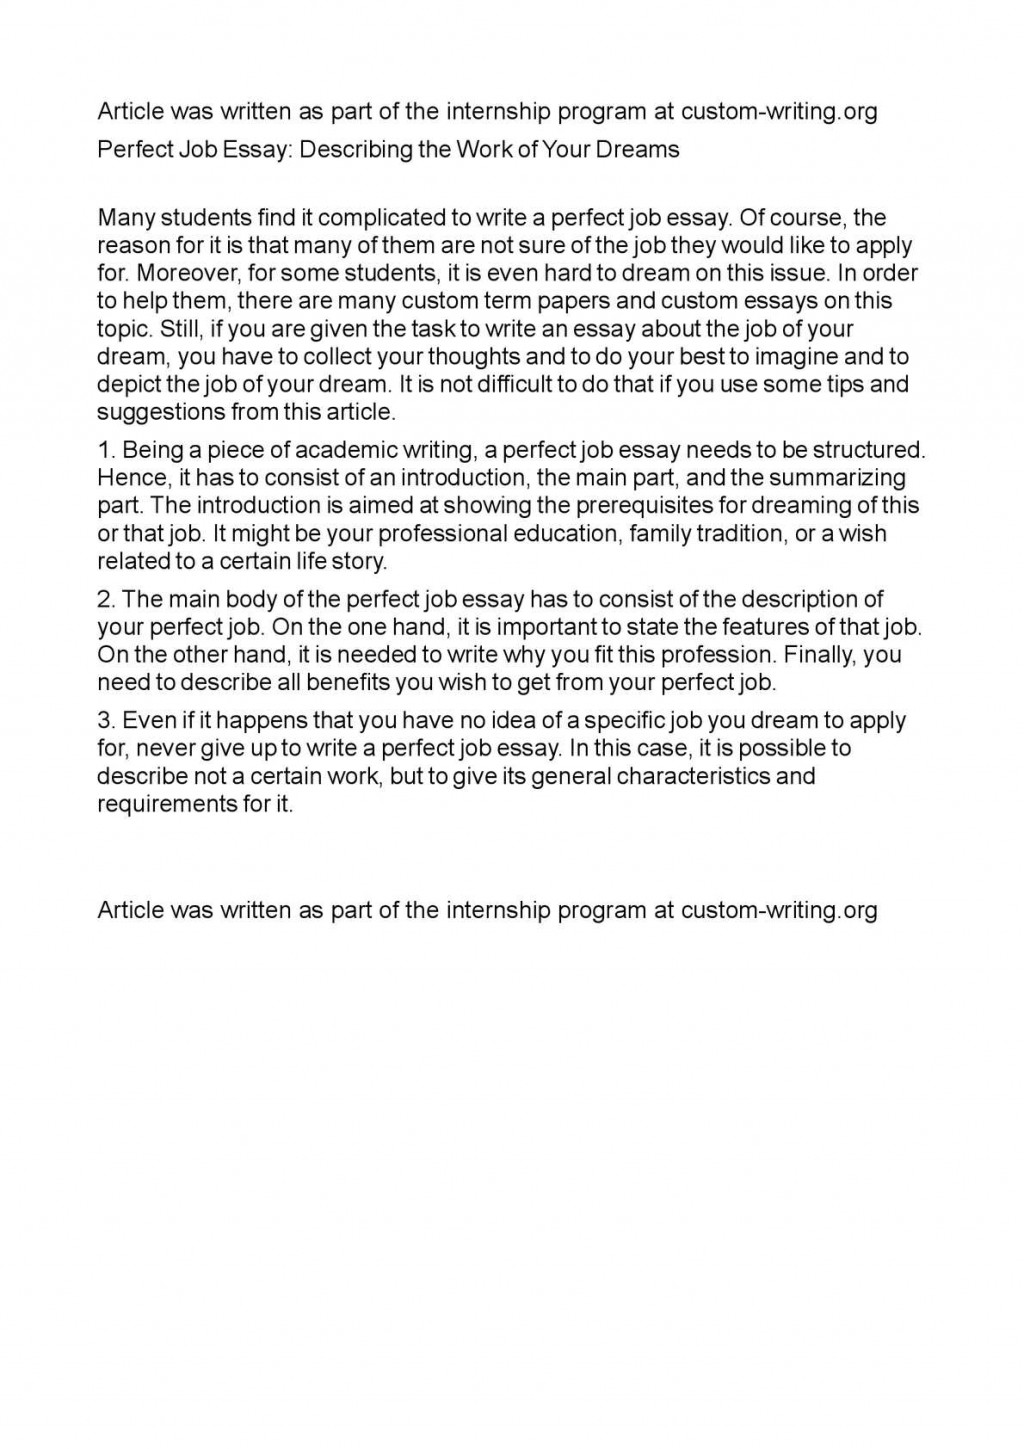 009 American Dream Essay Outline Life Natural And Legal Righ Great Gatsby Death Of Salesman Unbelievable Lucid Conclusion College Examples Introduction Large